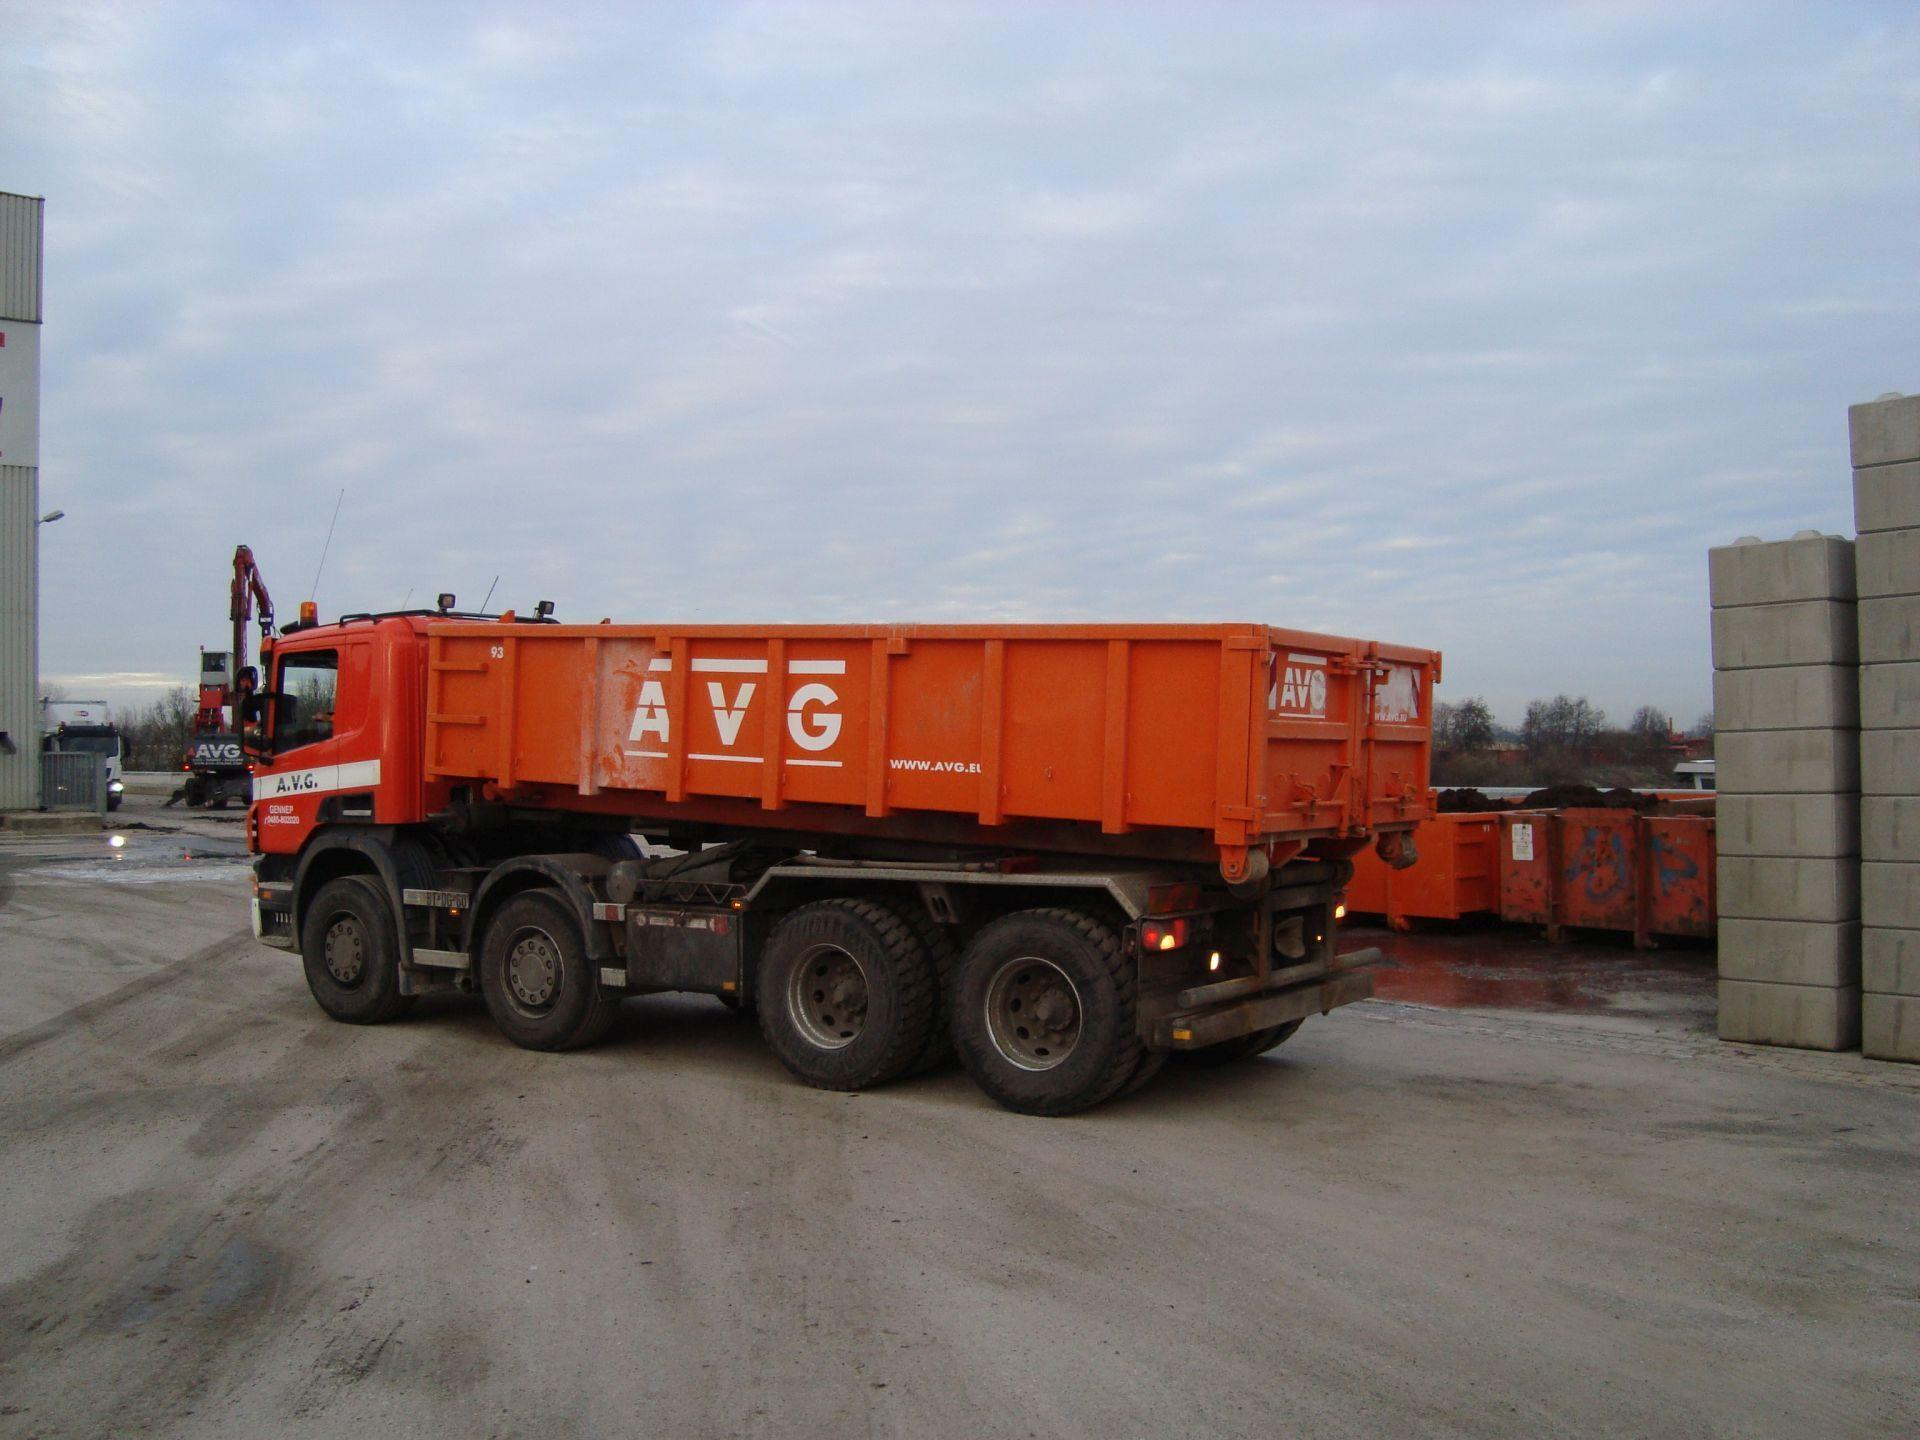 lange-container-4-avg-bouwstoffen